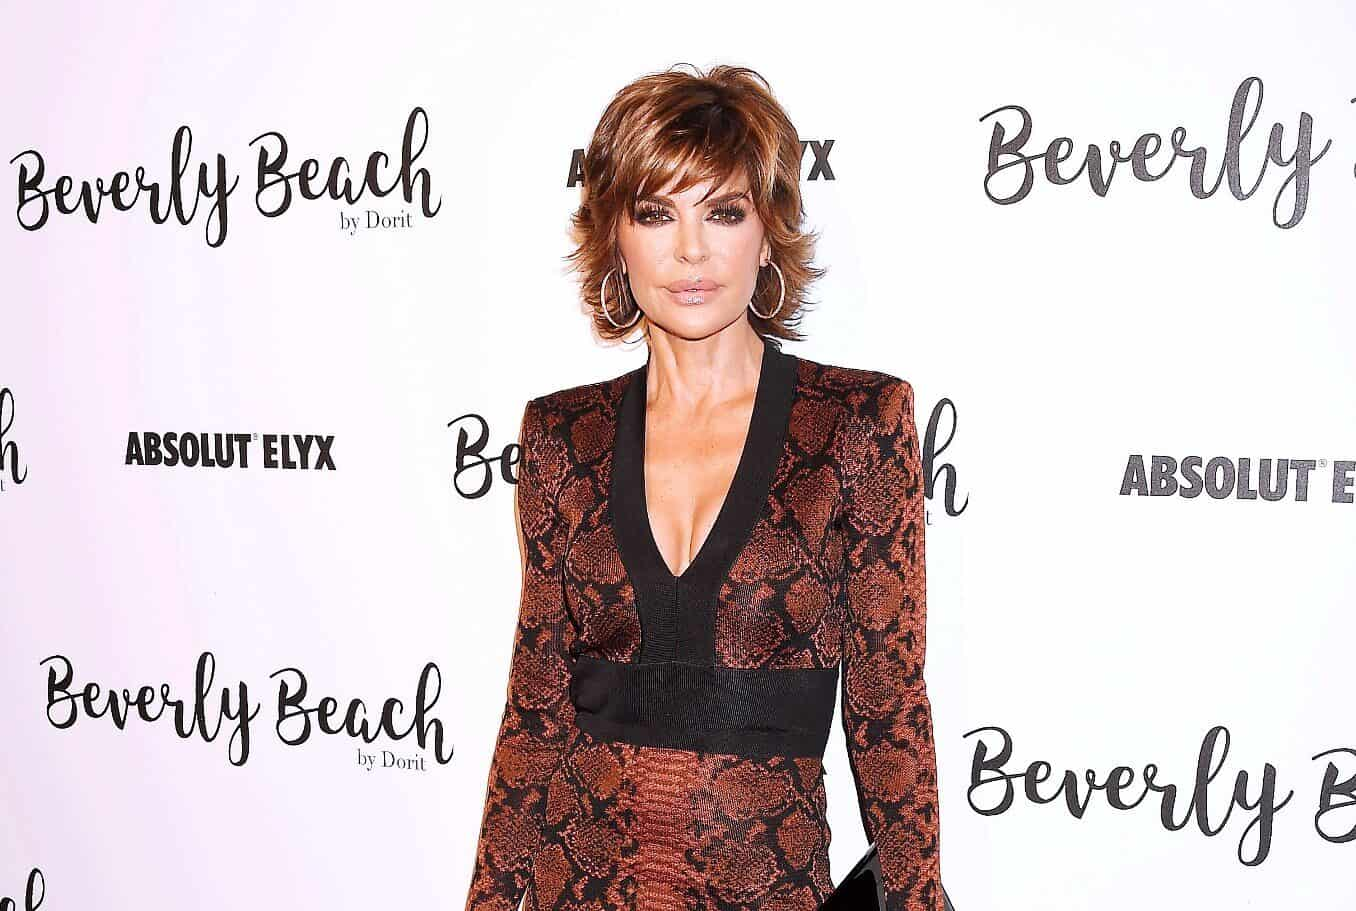 PHOTOS: Lisa Rinna Wears Nothing But Sunglasses in Racy Campaign, See What Her RHOBH Co-Stars Are Saying as Daughters and Husband Harry React